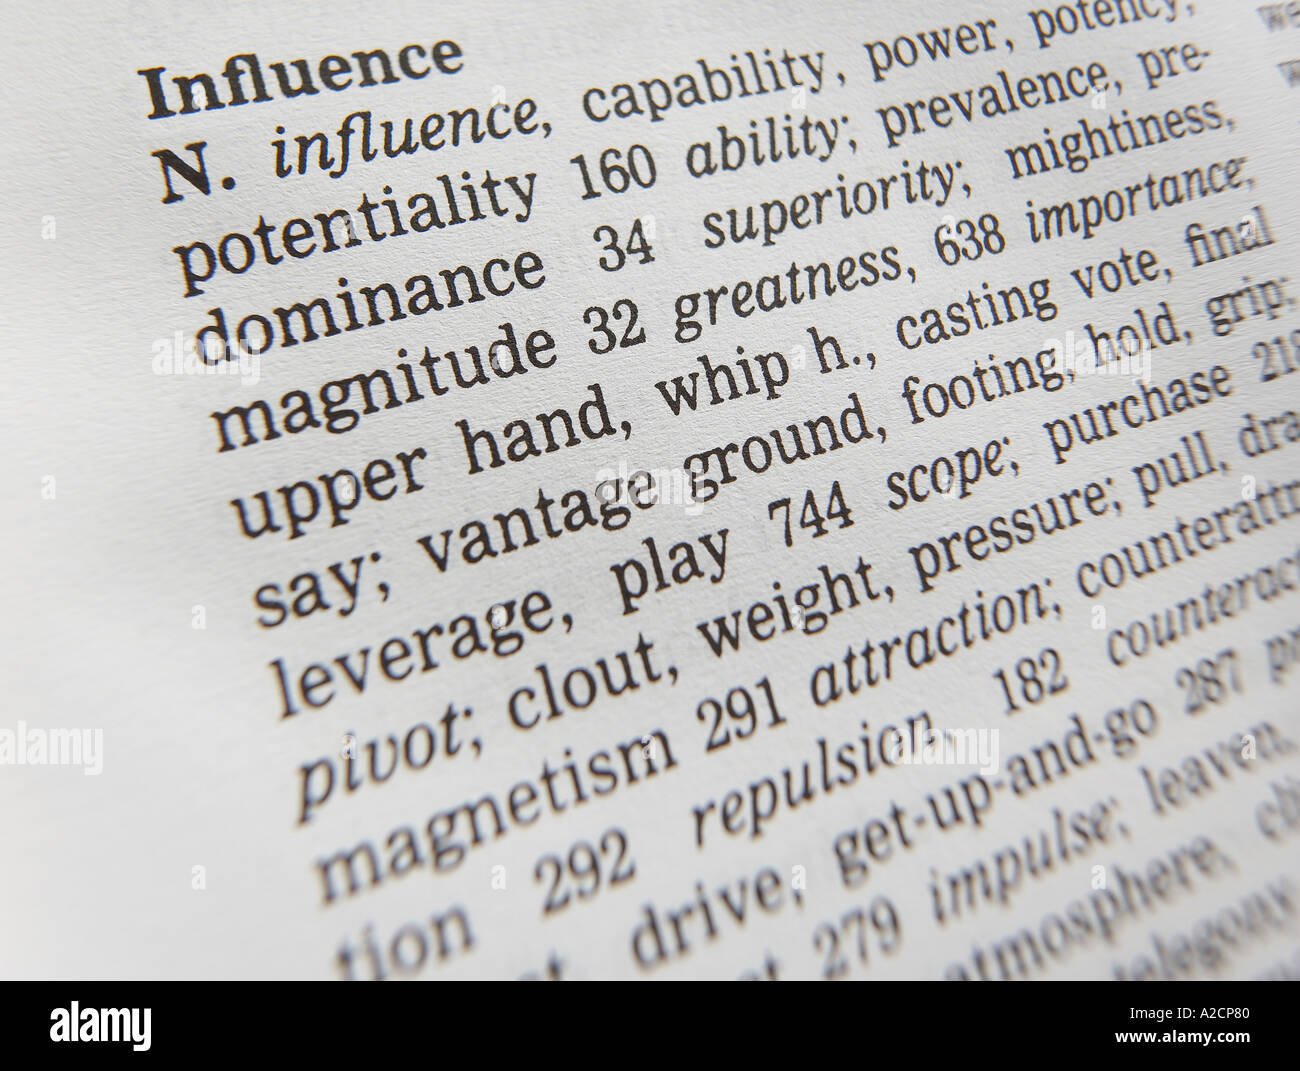 THESAURUS PAGE SHOWING DEFINITION OF WORD INFLUENCE - Stock Image